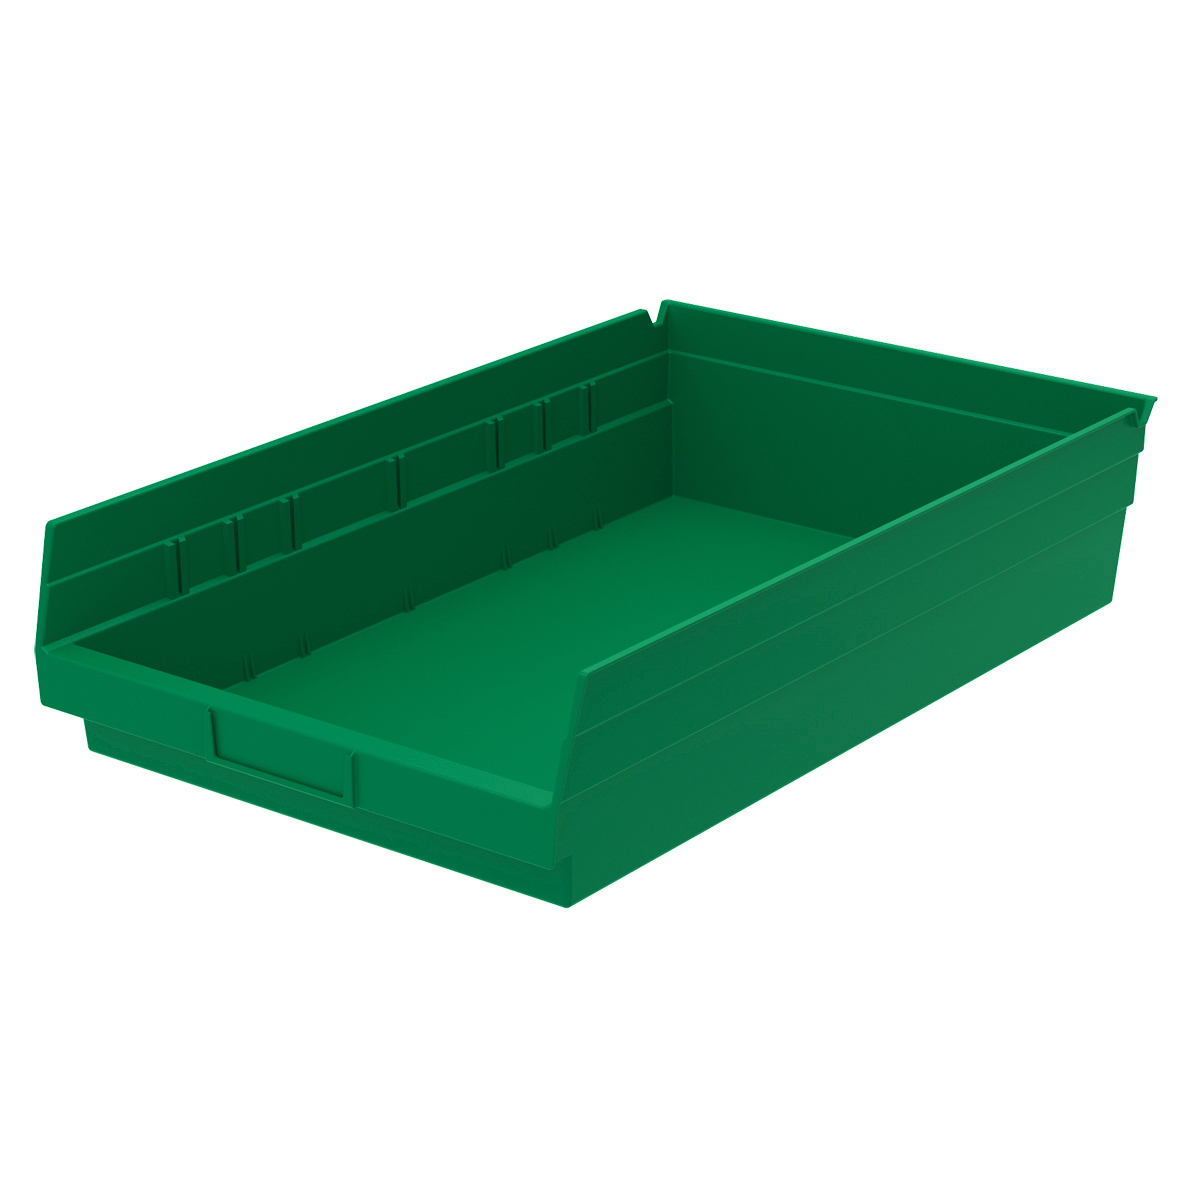 Shelf Bin 17-7/8 x 11-1/8 x 4, Green (30178GREEN).  This item sold in carton quantities of 12.